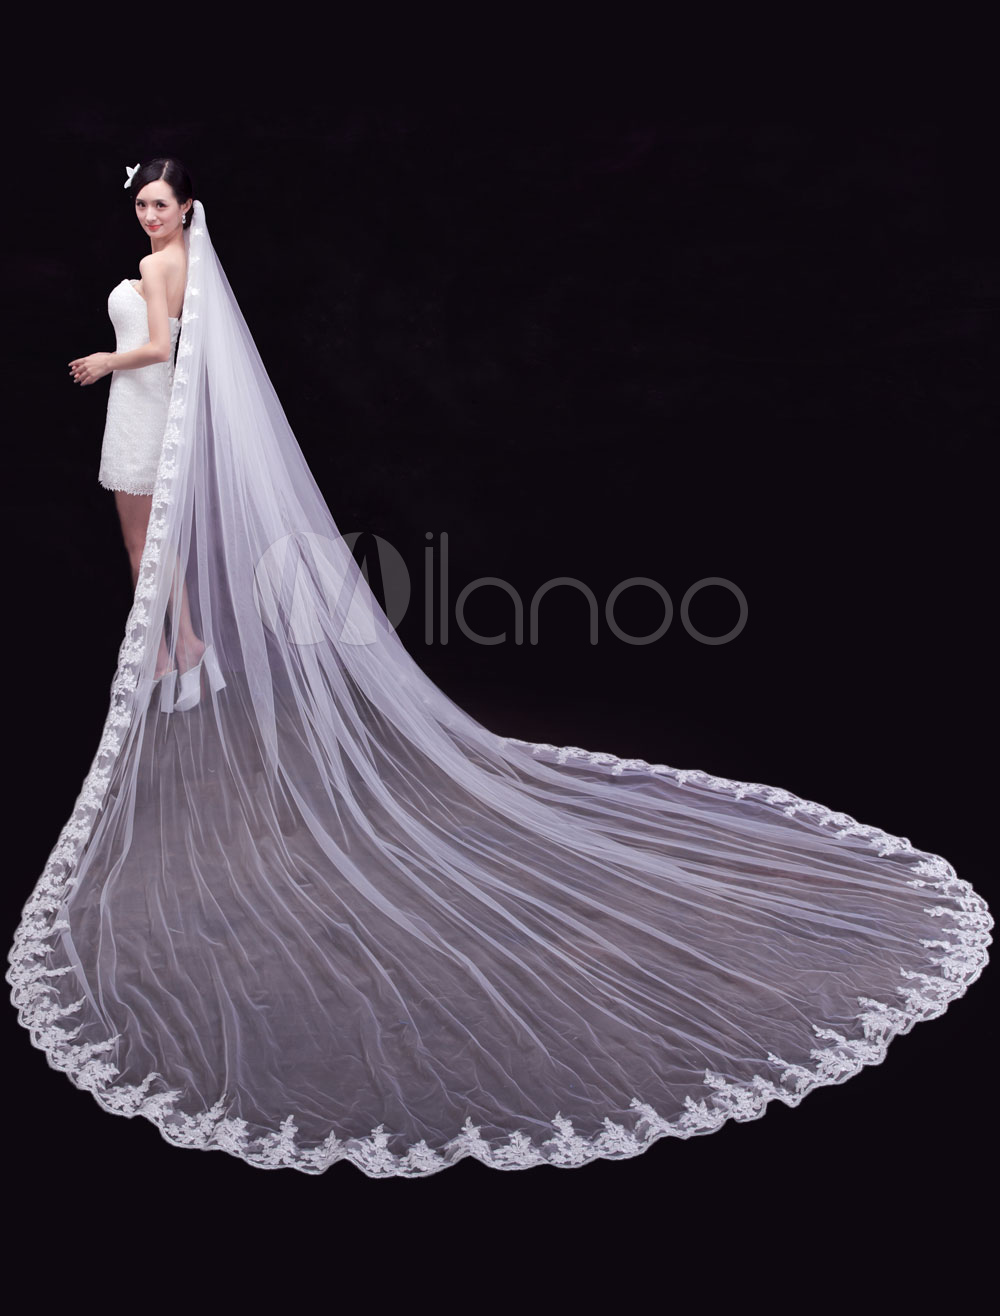 New Trend Lace Tulle One-Tier Scalloped Edge 350cm Wedding Veils